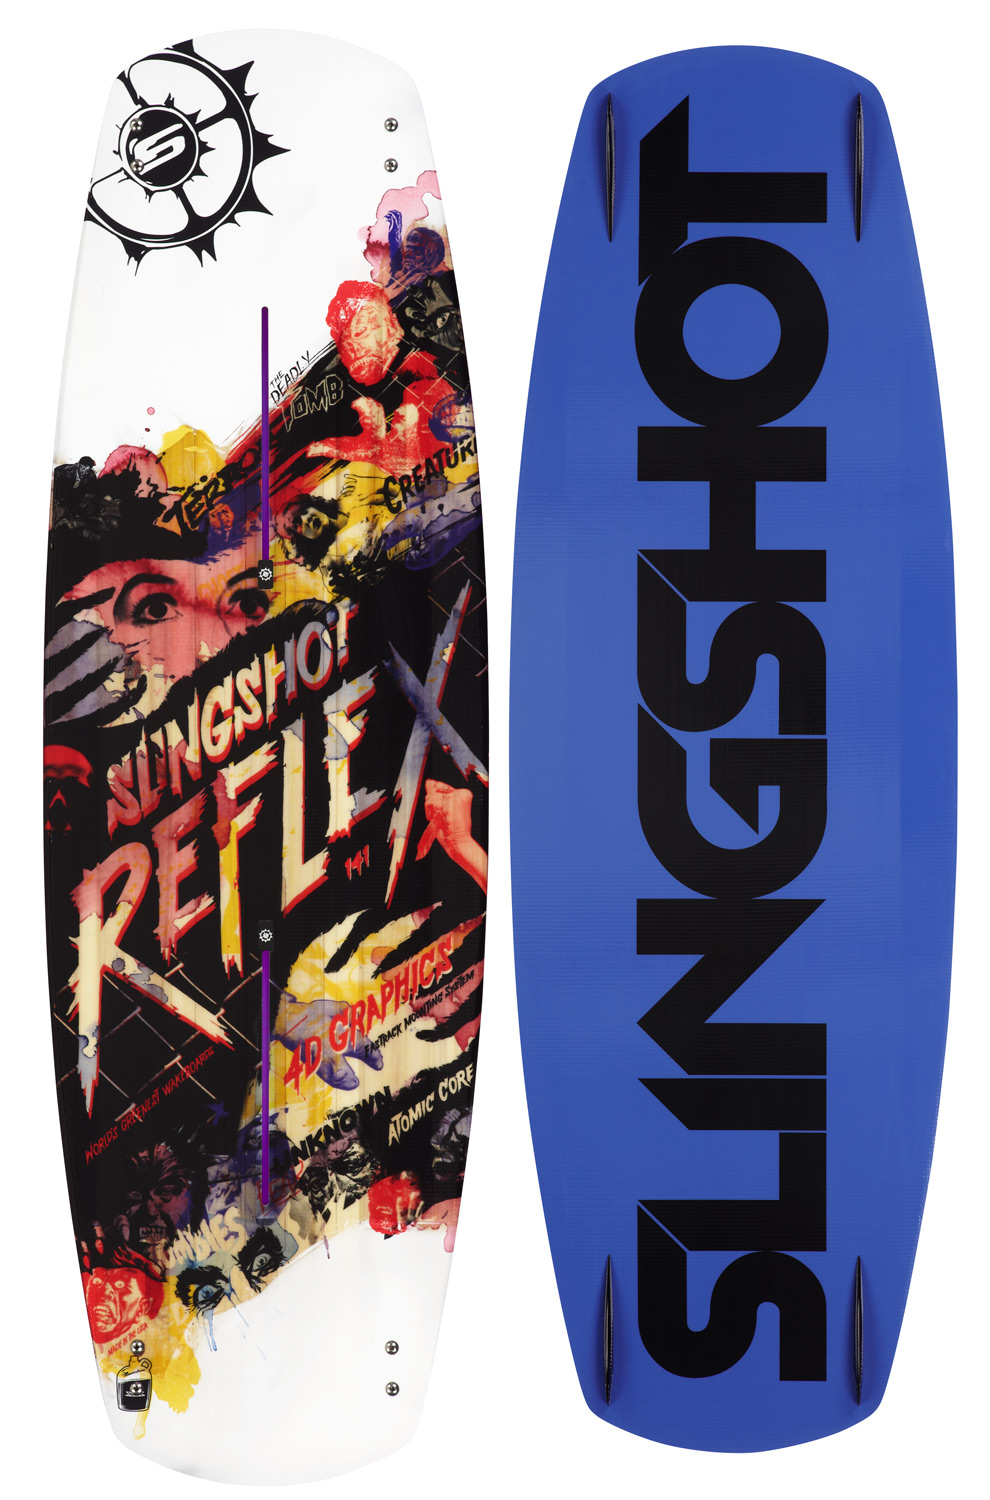 "Wake The 2012 Slingshot Reflex covers all ends of the spectrum. From and afternoon set behind the boat to shredding your local rail park, this is the only board to do it all. The ""Magic Stick"" of wakeboards. Speed, edge control, aggressive pop, smooth landings, and unmatched durability make the new 2012 Reflex the ultimate board, from cable to wake.Key Features of the Slingshot Reflex Wakeboard: Beginner – Advanced Cable Park Dominator Rail Park Shredder Winching Pioneer Freeride Enthusiast Subtle 3-Stage Rocker: massive boosting pop with more speed Future Response Technology™: lighweight, more durable core that offers controlled flex that evenly distributes an explosive energy burst when popping off the wake and on ollies, and absorbs shock on hard landings New Fastrack: new and greatly improved boot mounting system that is stronger, more versatile, and provides superior board connection NEW Atomic Core: all wood - lighter, stronger, and provides the liveliest feel available Singleshot Fusion Sidewalls: high durometer urethane seamlessly fused into the core (The most durable and dampening wakeboard rail ever) Ultra Glide Base: the ultimate board base that provides proven durability Sliderite-SR Chined Rails: makes catching or blowing out your board edges virtually impossible Taperwall: better edge control, added speed stability, sounder handling in rough water and more impact resistant Park Ready Tune: abiliyt to customiaze the board rails to desired shaps Elliptical Concave: quicker edge to edge response 4D Graphic Technology: the latest in graphic technology, giving every board individuality, and four dimensional depth Handmade by Slingshot in the USA: precision finished product using the highest quality materials - $294.95"